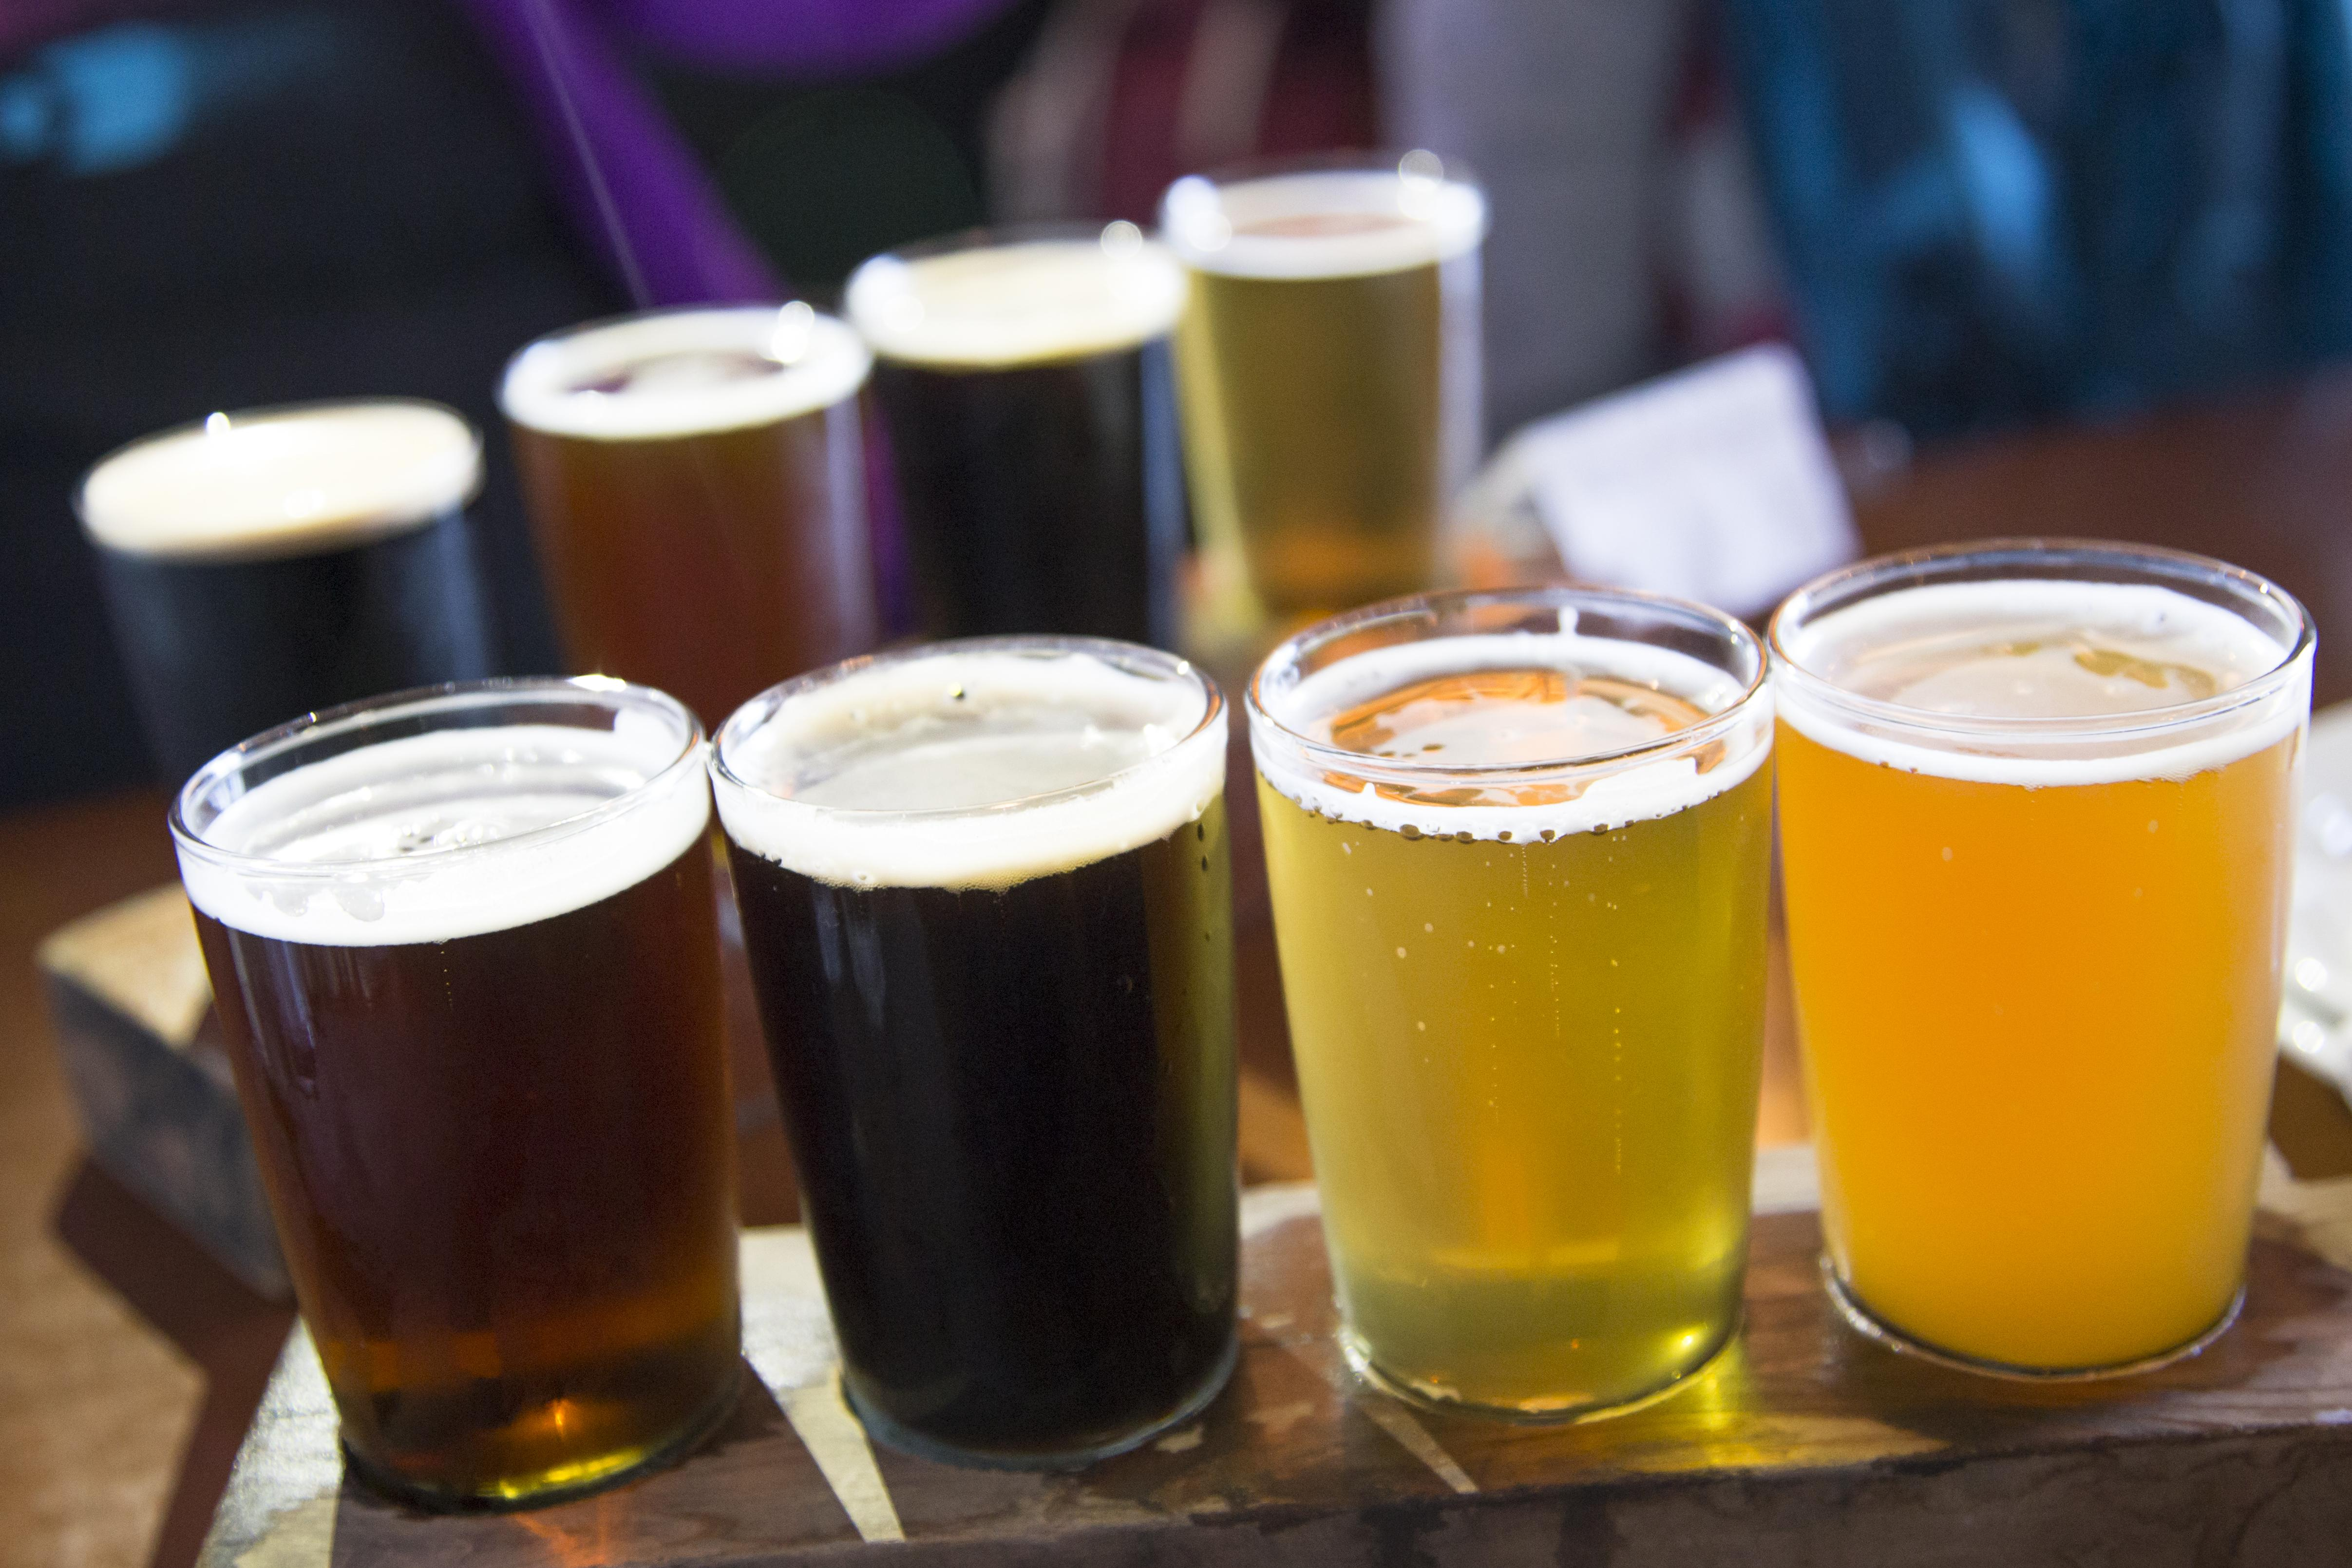 Beer & Cheese Pairing with Deschutes Brewery